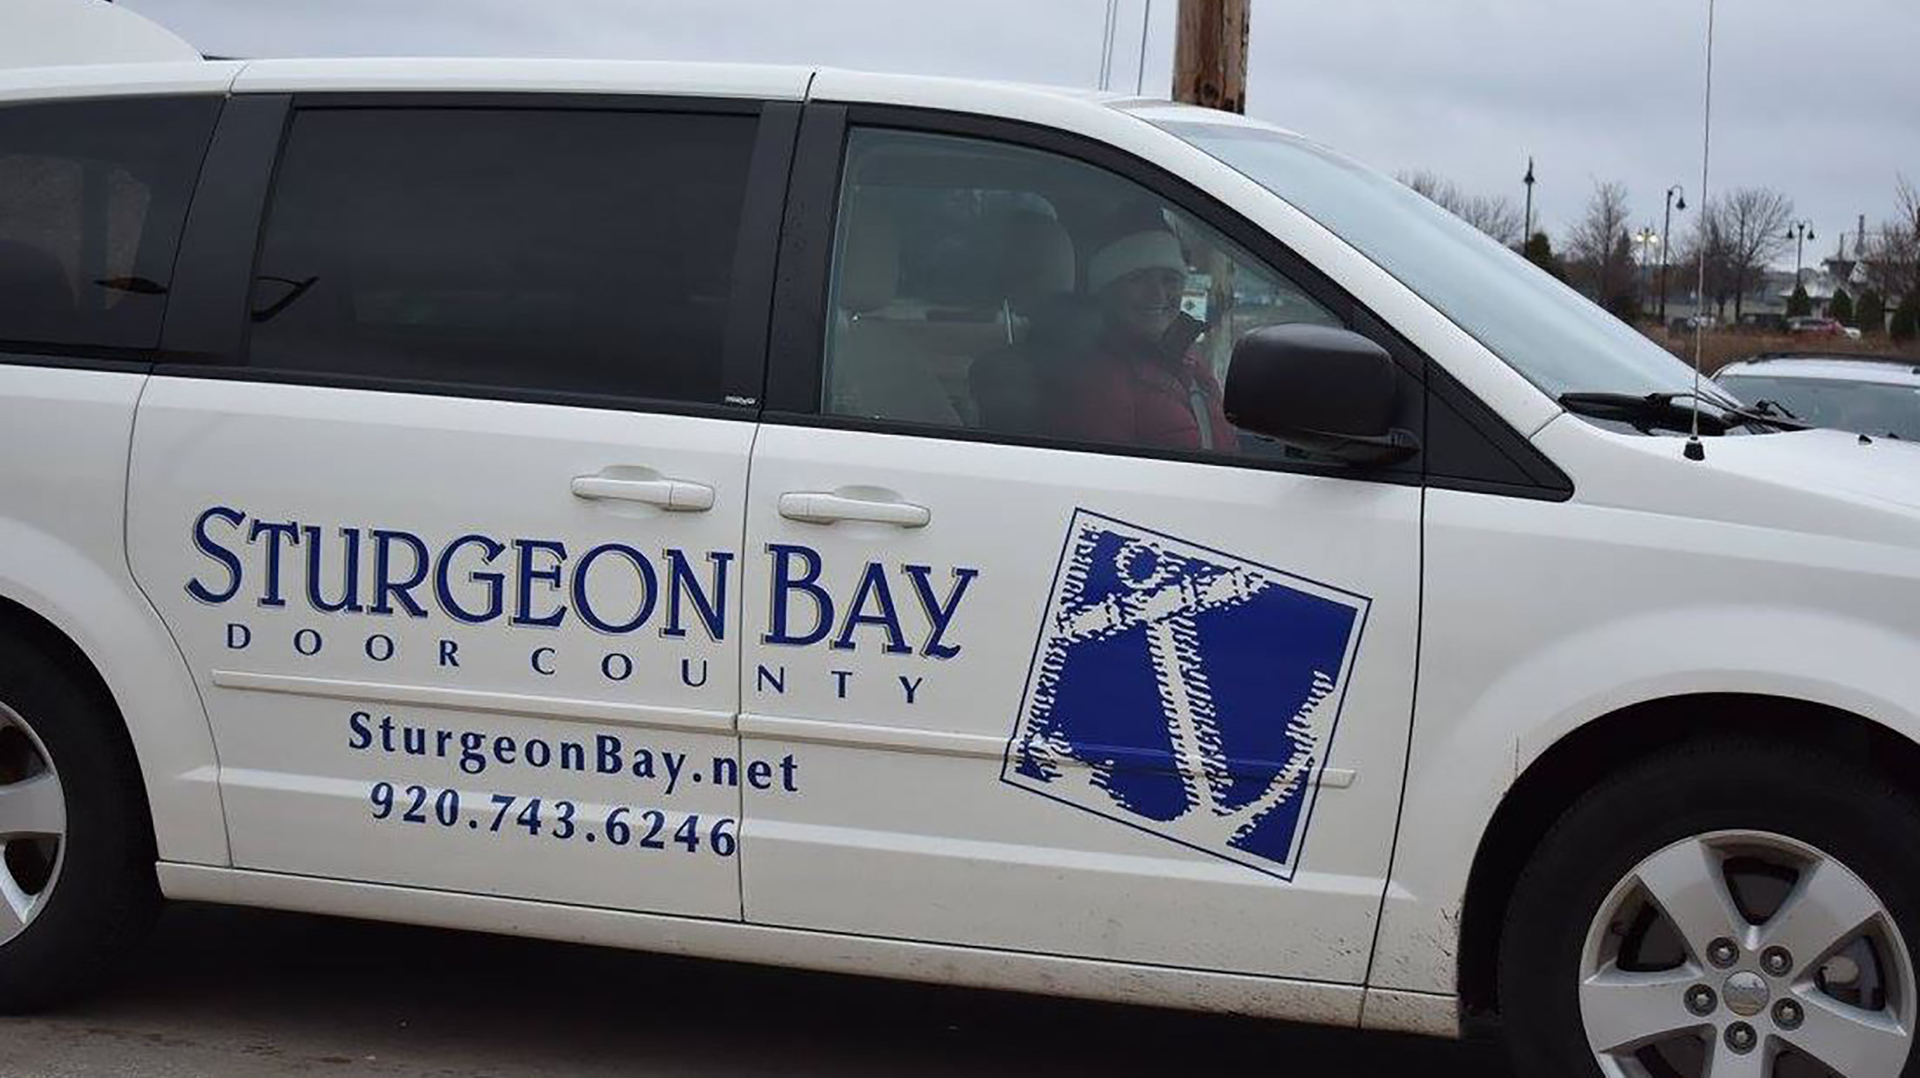 Sturgeon Bay Visitor Center